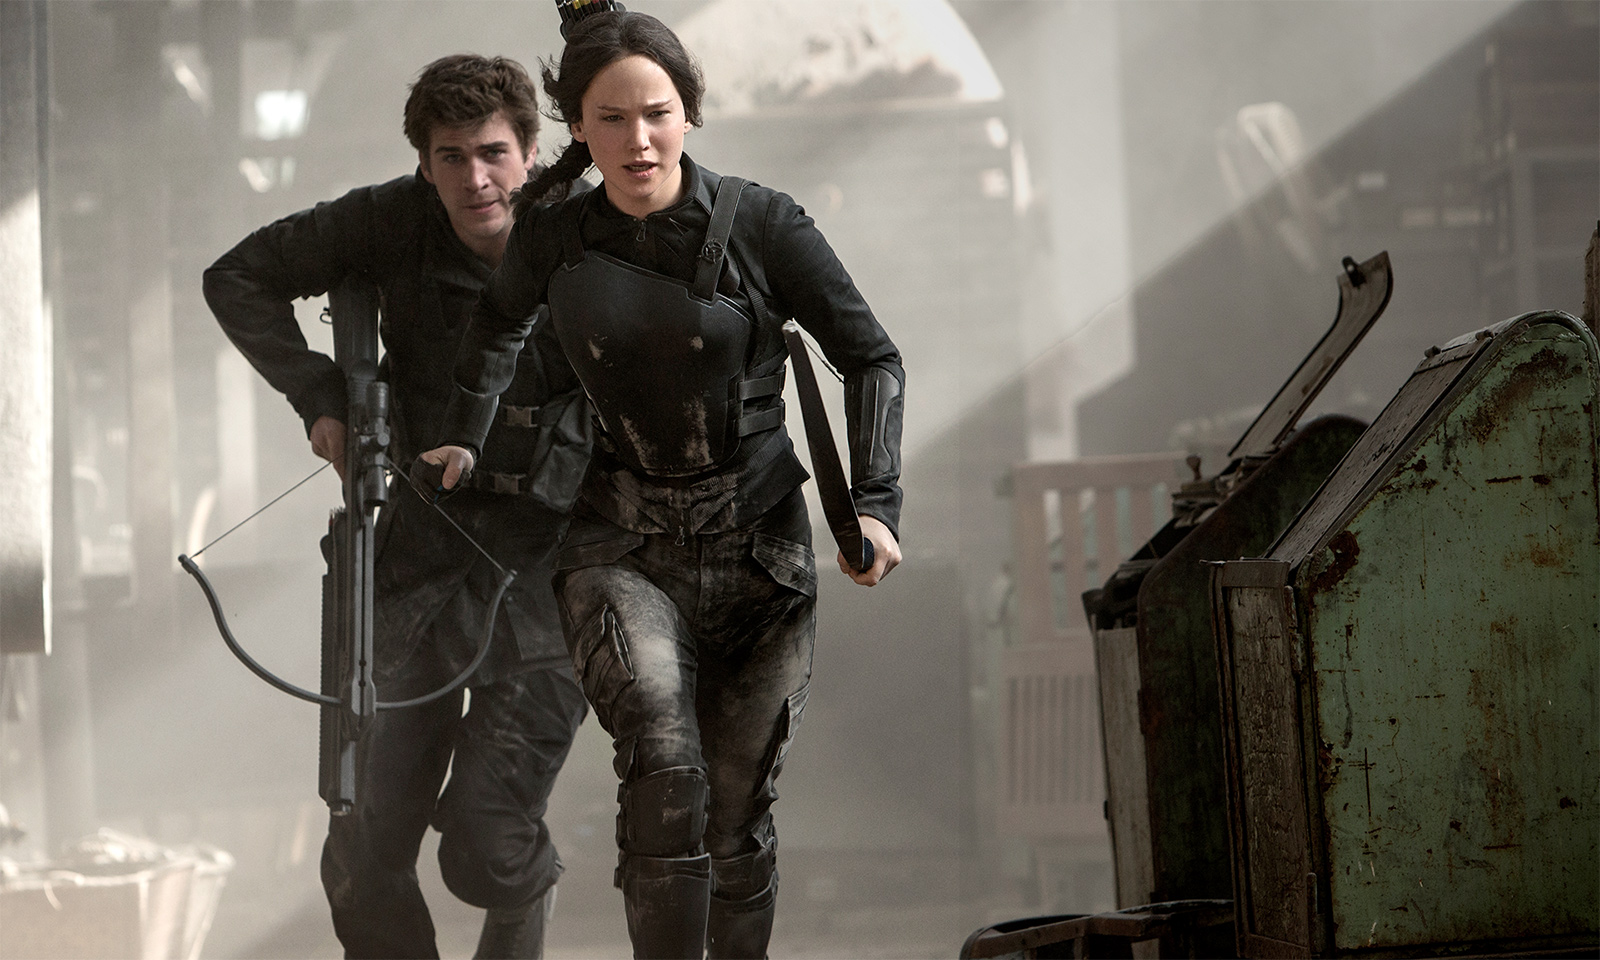 The Hunger Games: Mockingjay Part 1 Promotionals & Stills